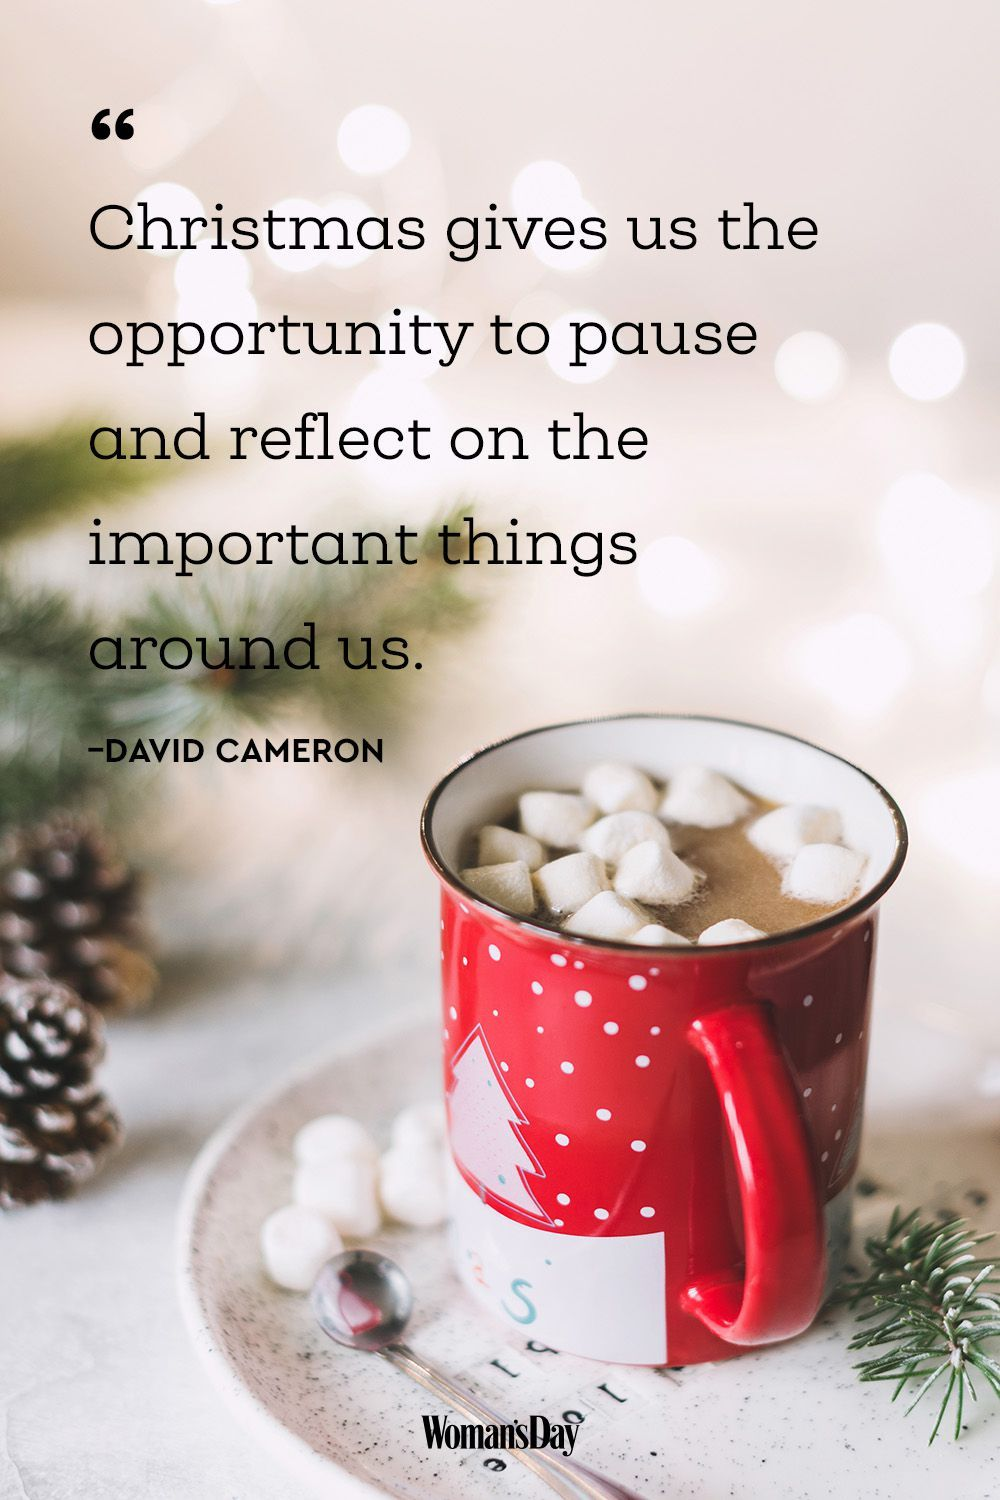 20 Merry Christmas Quotes Inspirational Christmas Sayings And Quotes For Friends And F Christmas Quotes Inspirational Merry Christmas Quotes Christmas Quotes